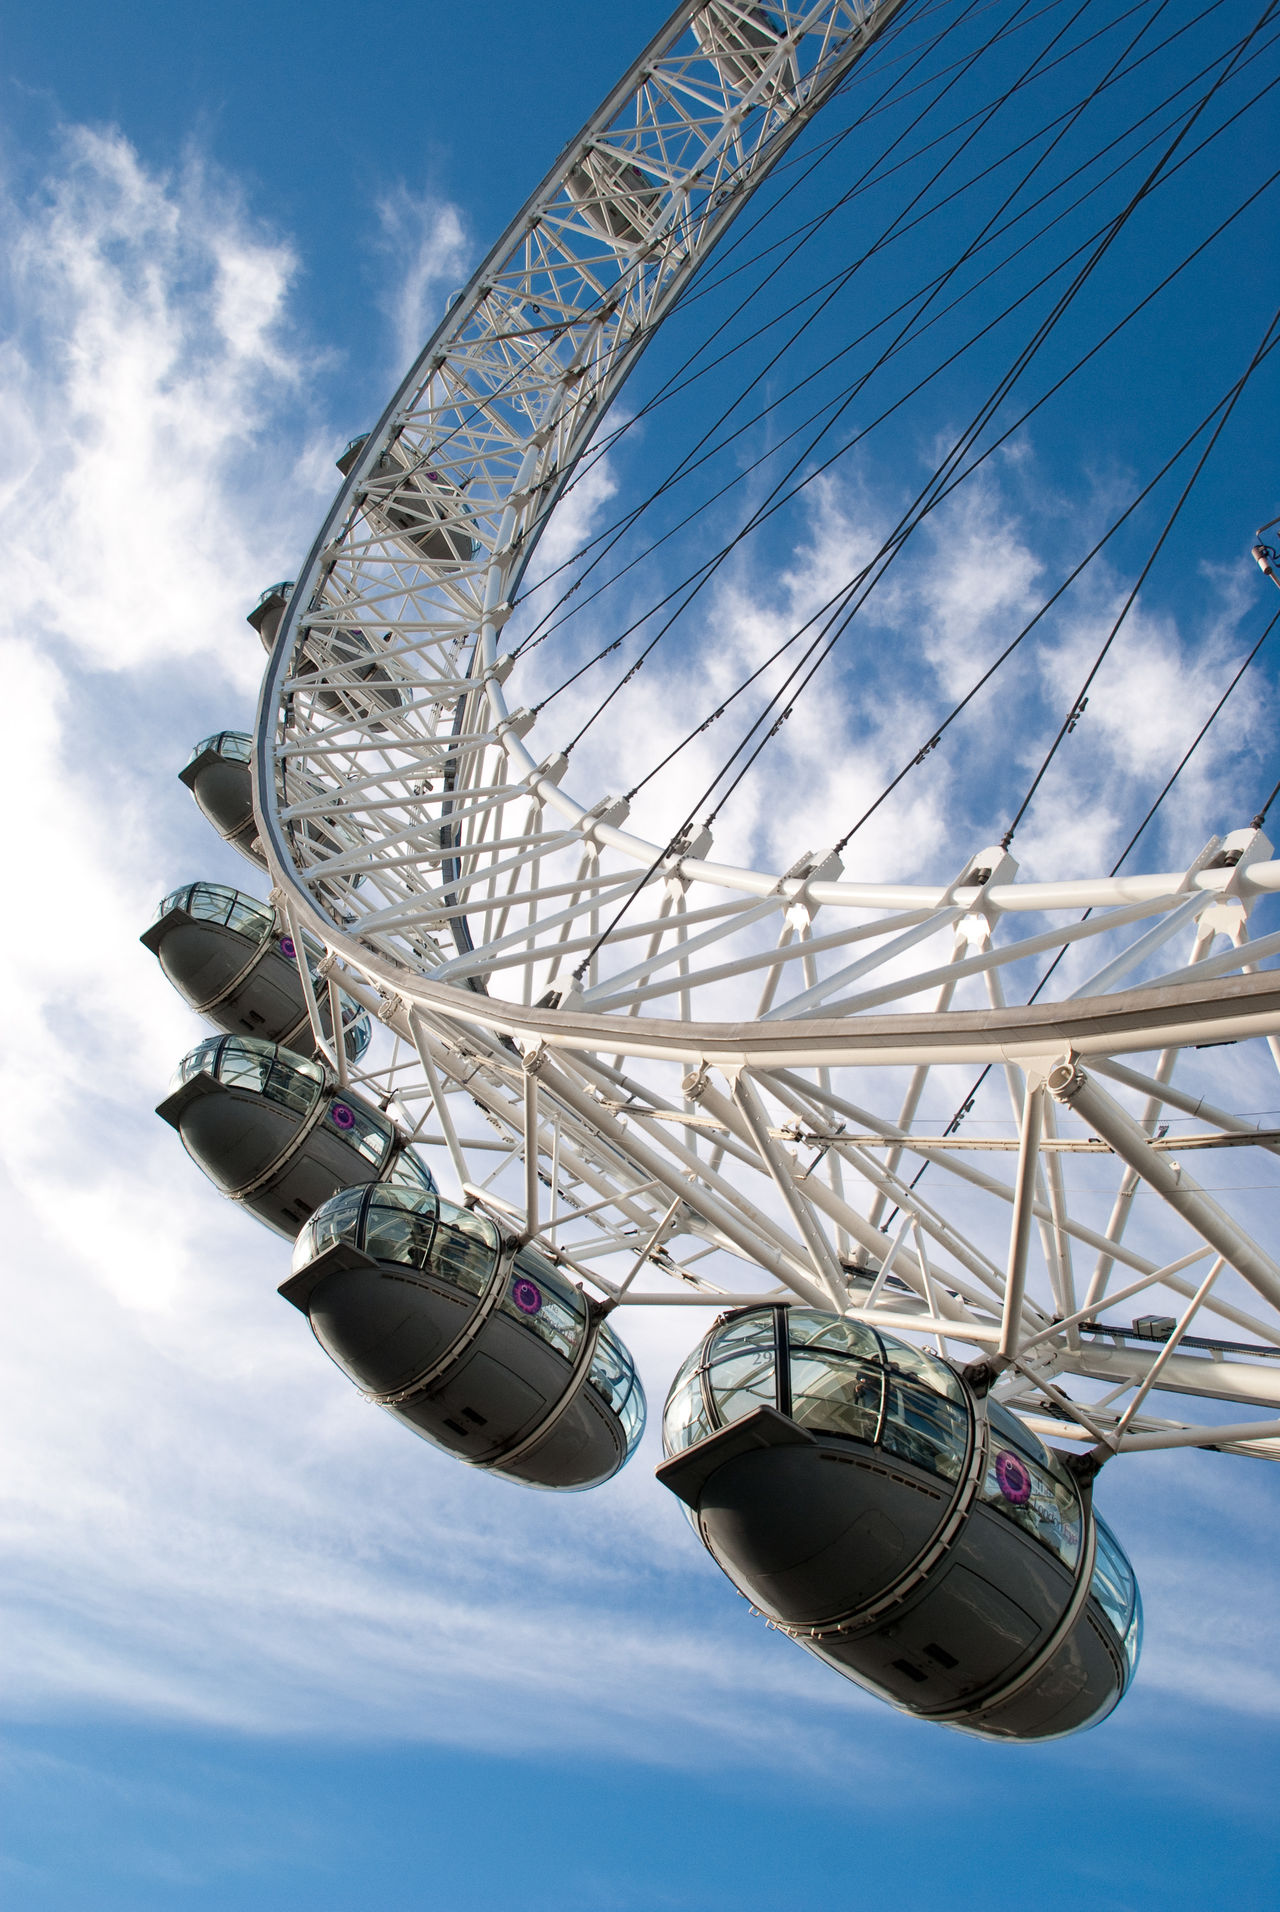 Amusement Park Amusement Park Ride Arts Culture And Entertainment Big Wheel Cloud - Sky Day Ferris Wheel Large Leisure Activity London Eye🎡 Low Angle View No People Outdoors Riesenrad Sky